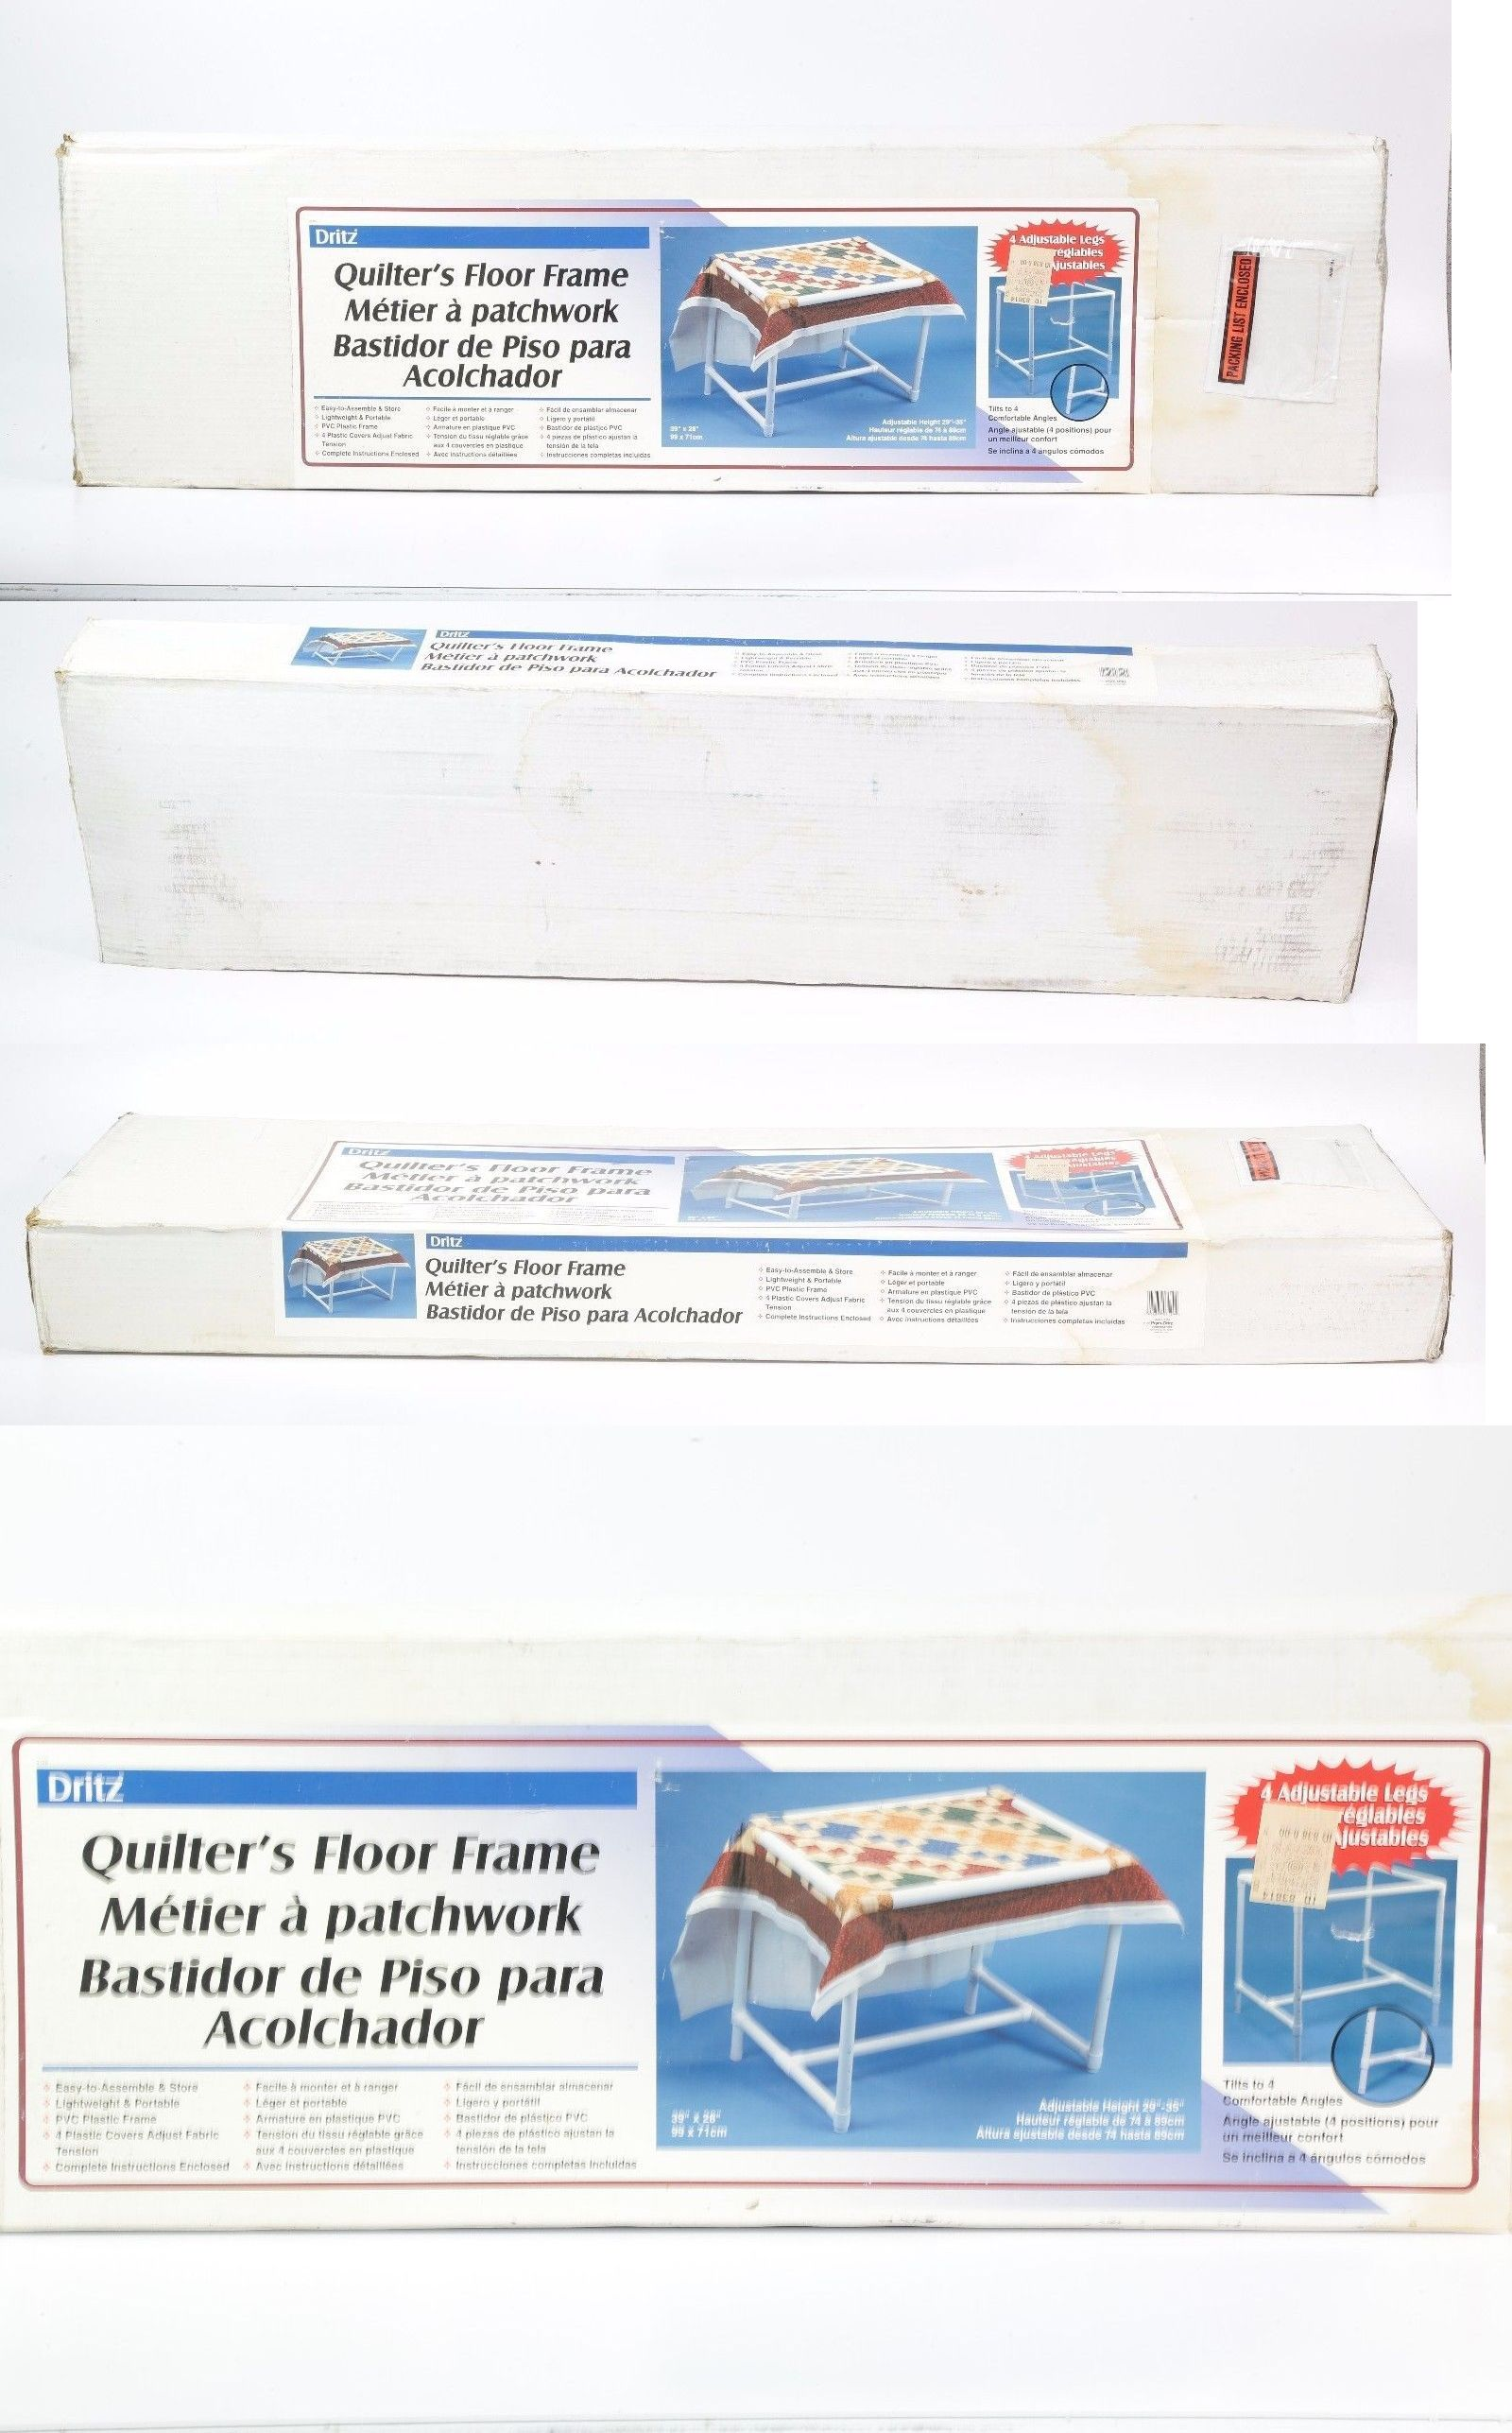 Quilting Tools and Equipment 19161: Dritz Quilters Floor Frame 39 ...